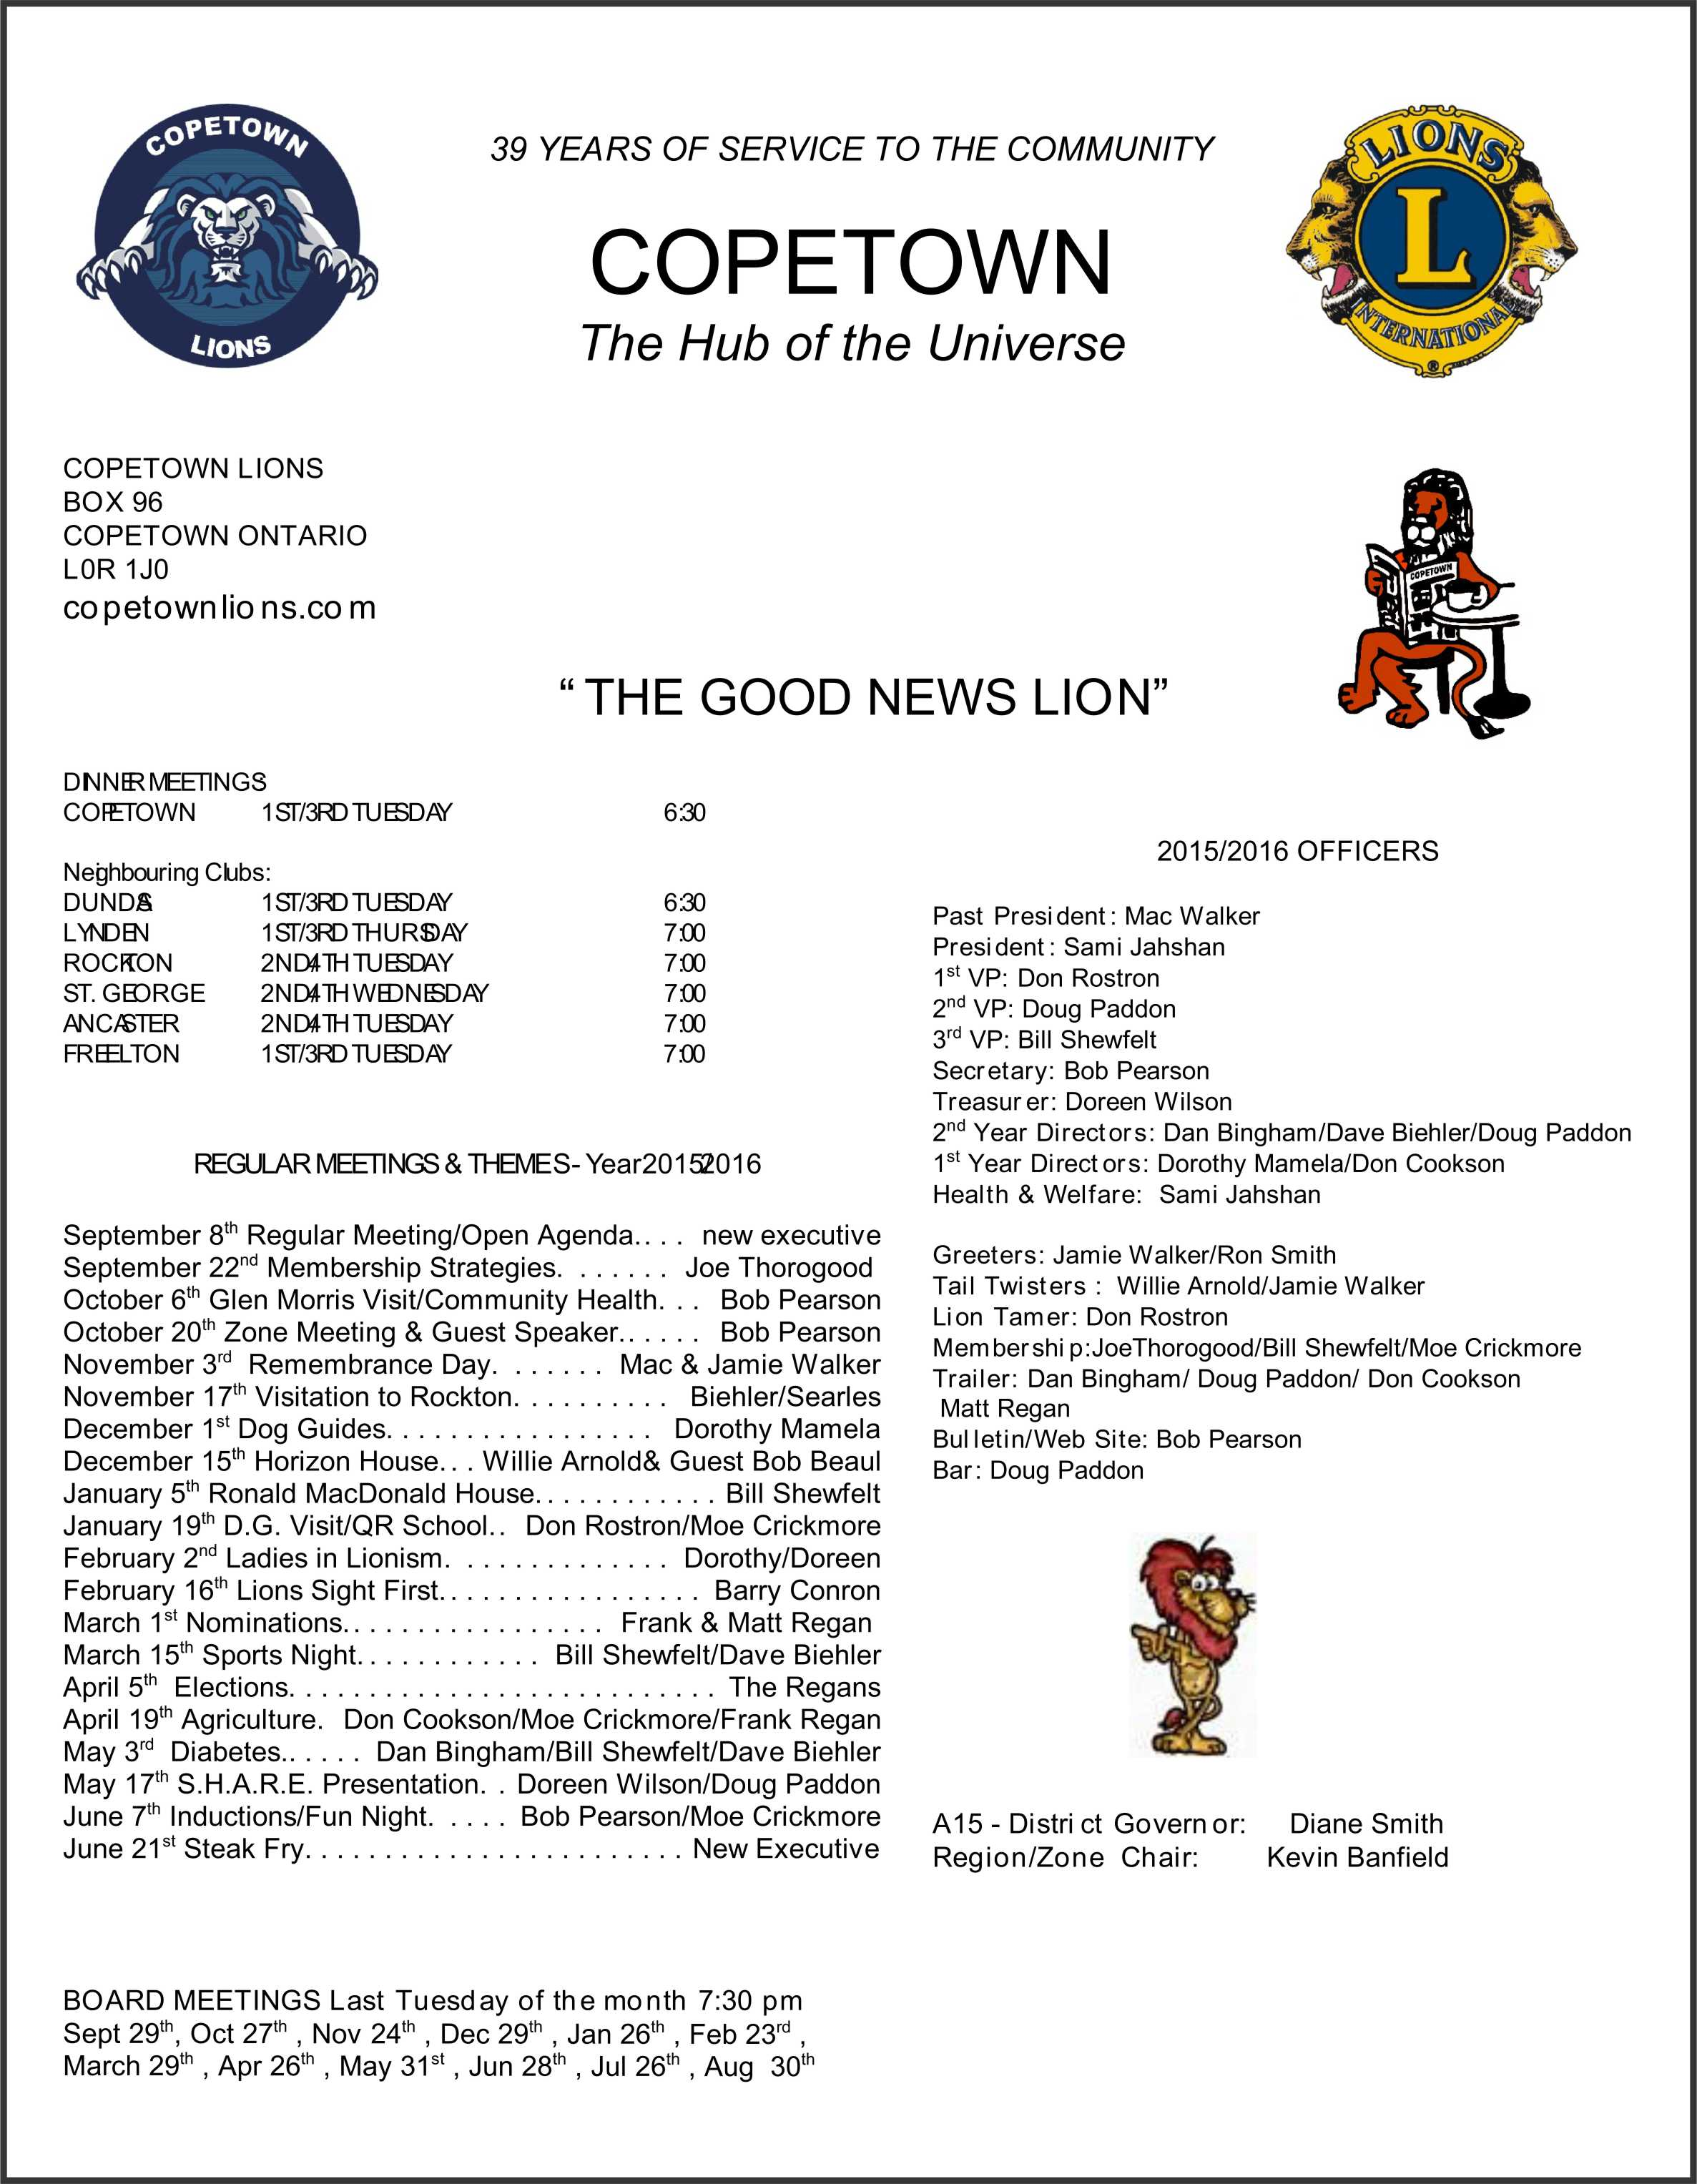 Copetown Lions Bulletin Cover